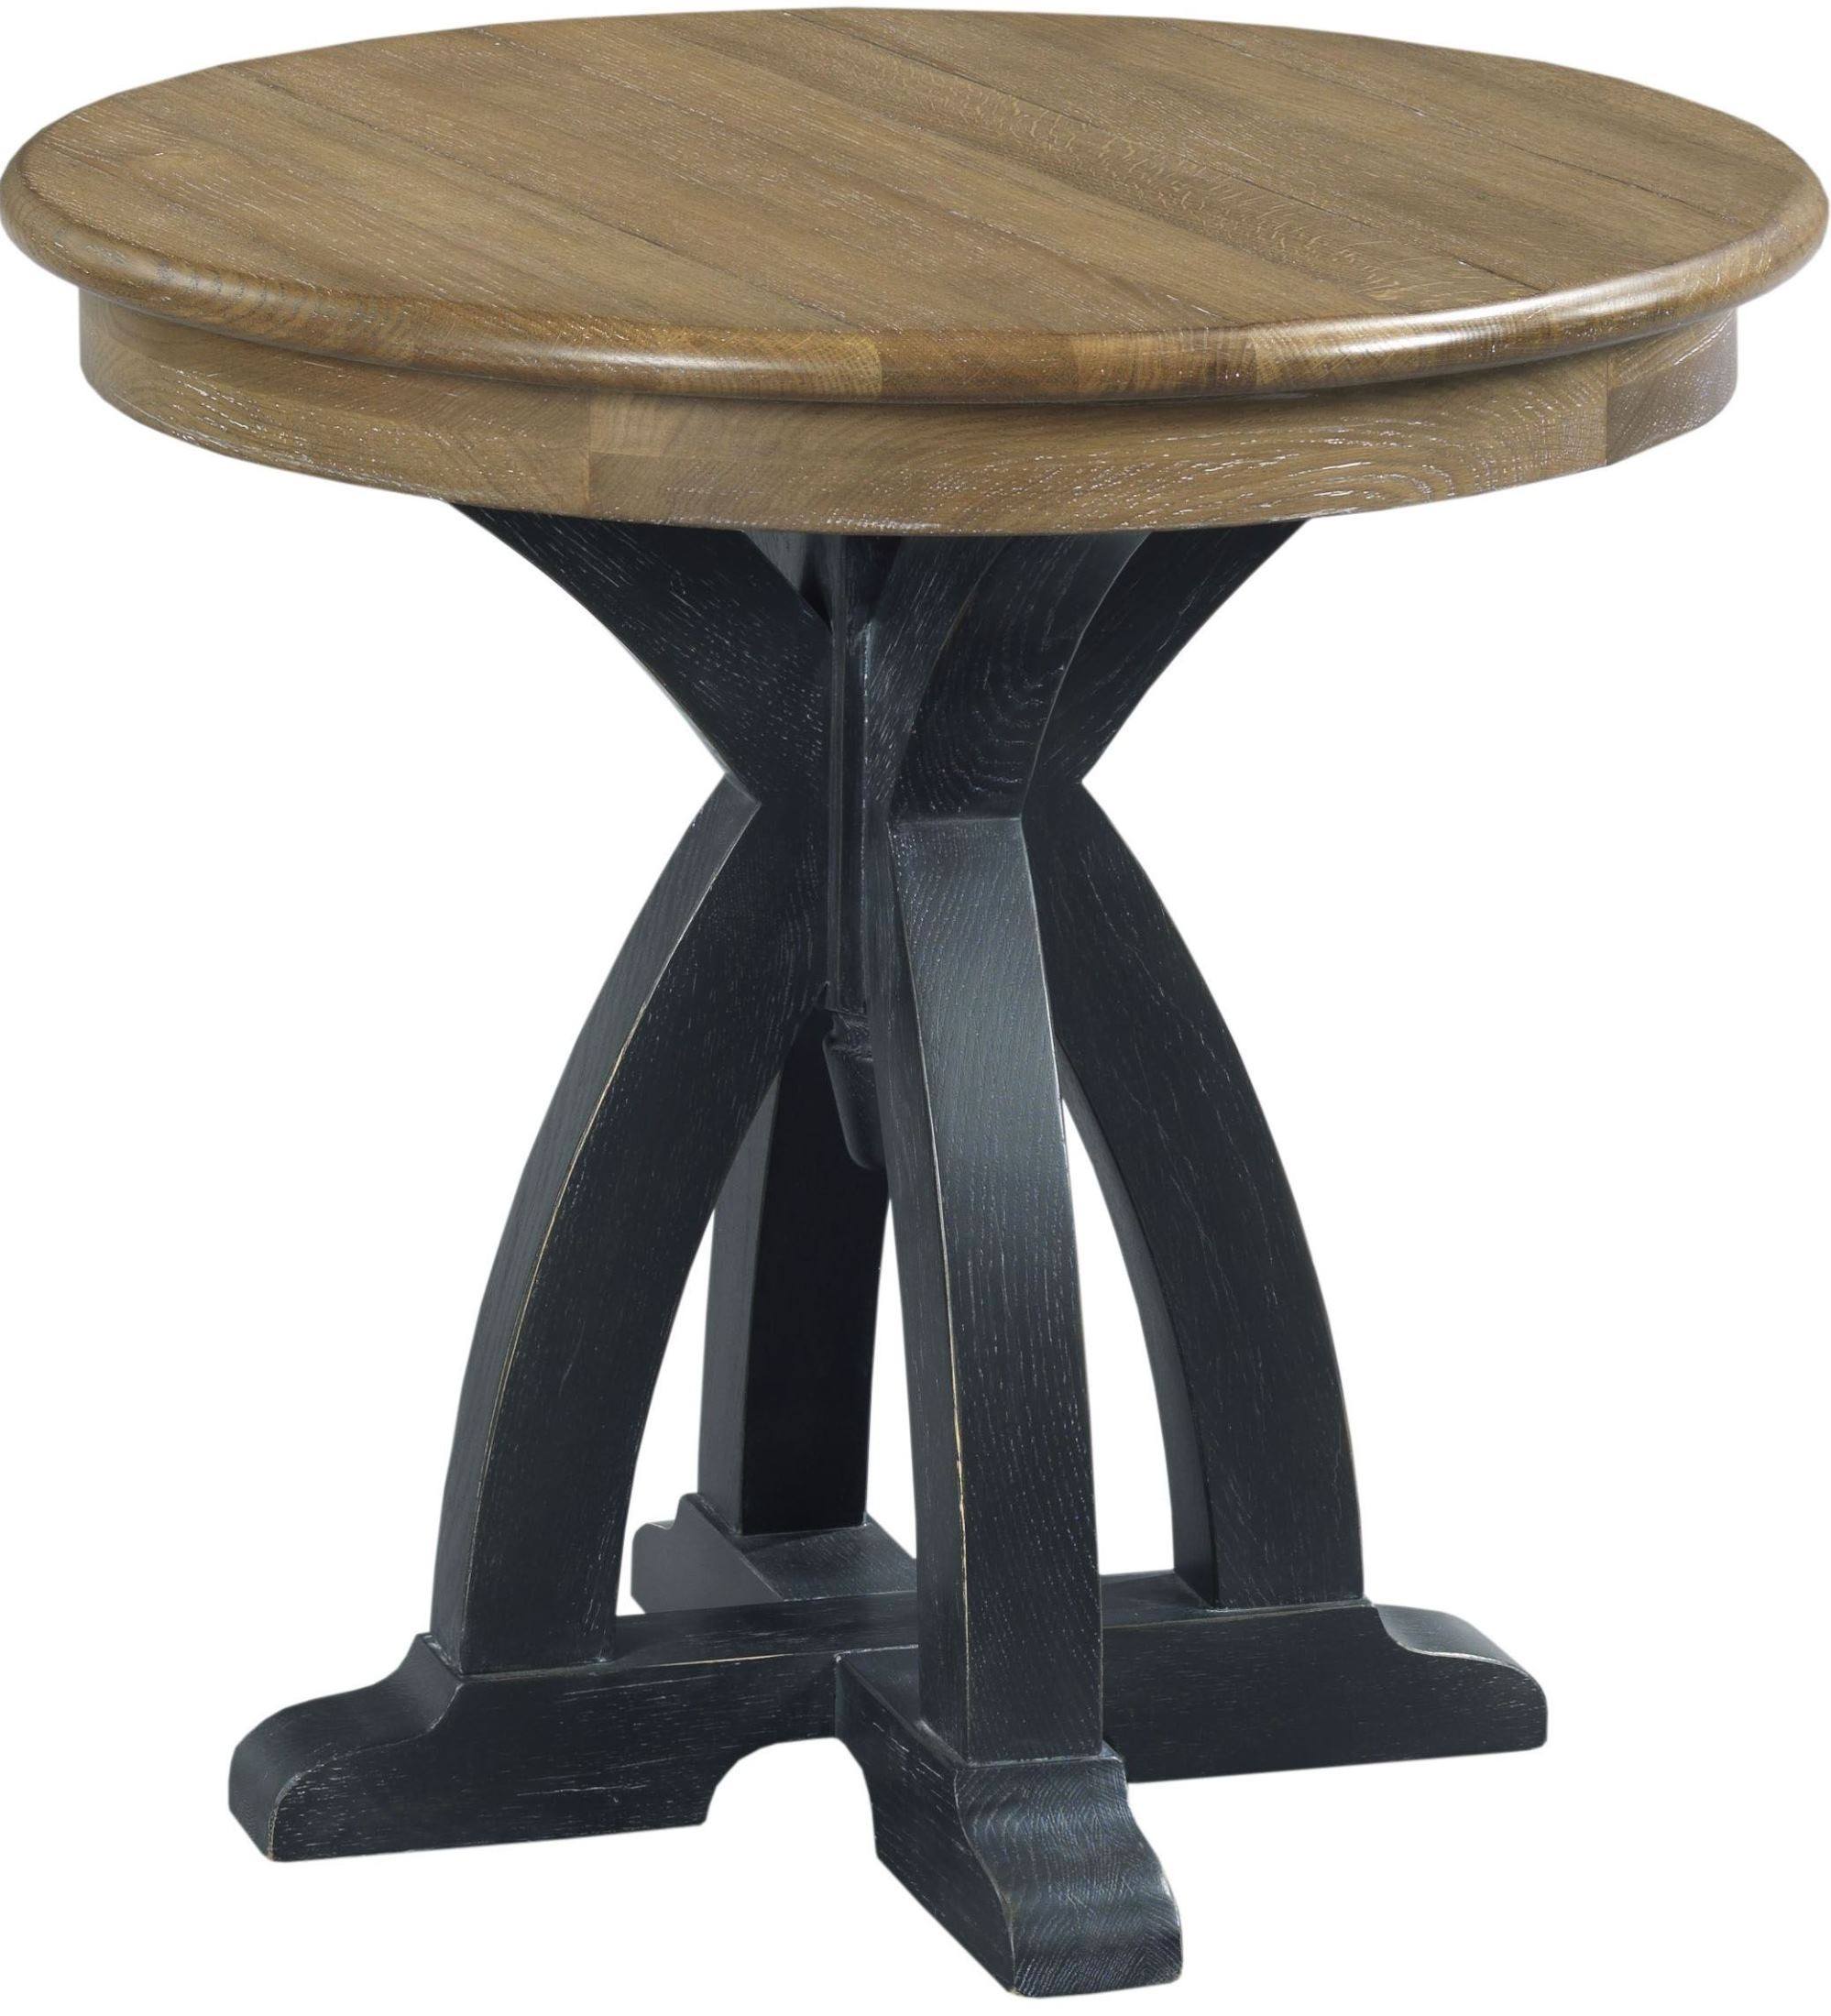 stone ridge round wood end table from kincaid 72 021 coleman furniture. Black Bedroom Furniture Sets. Home Design Ideas